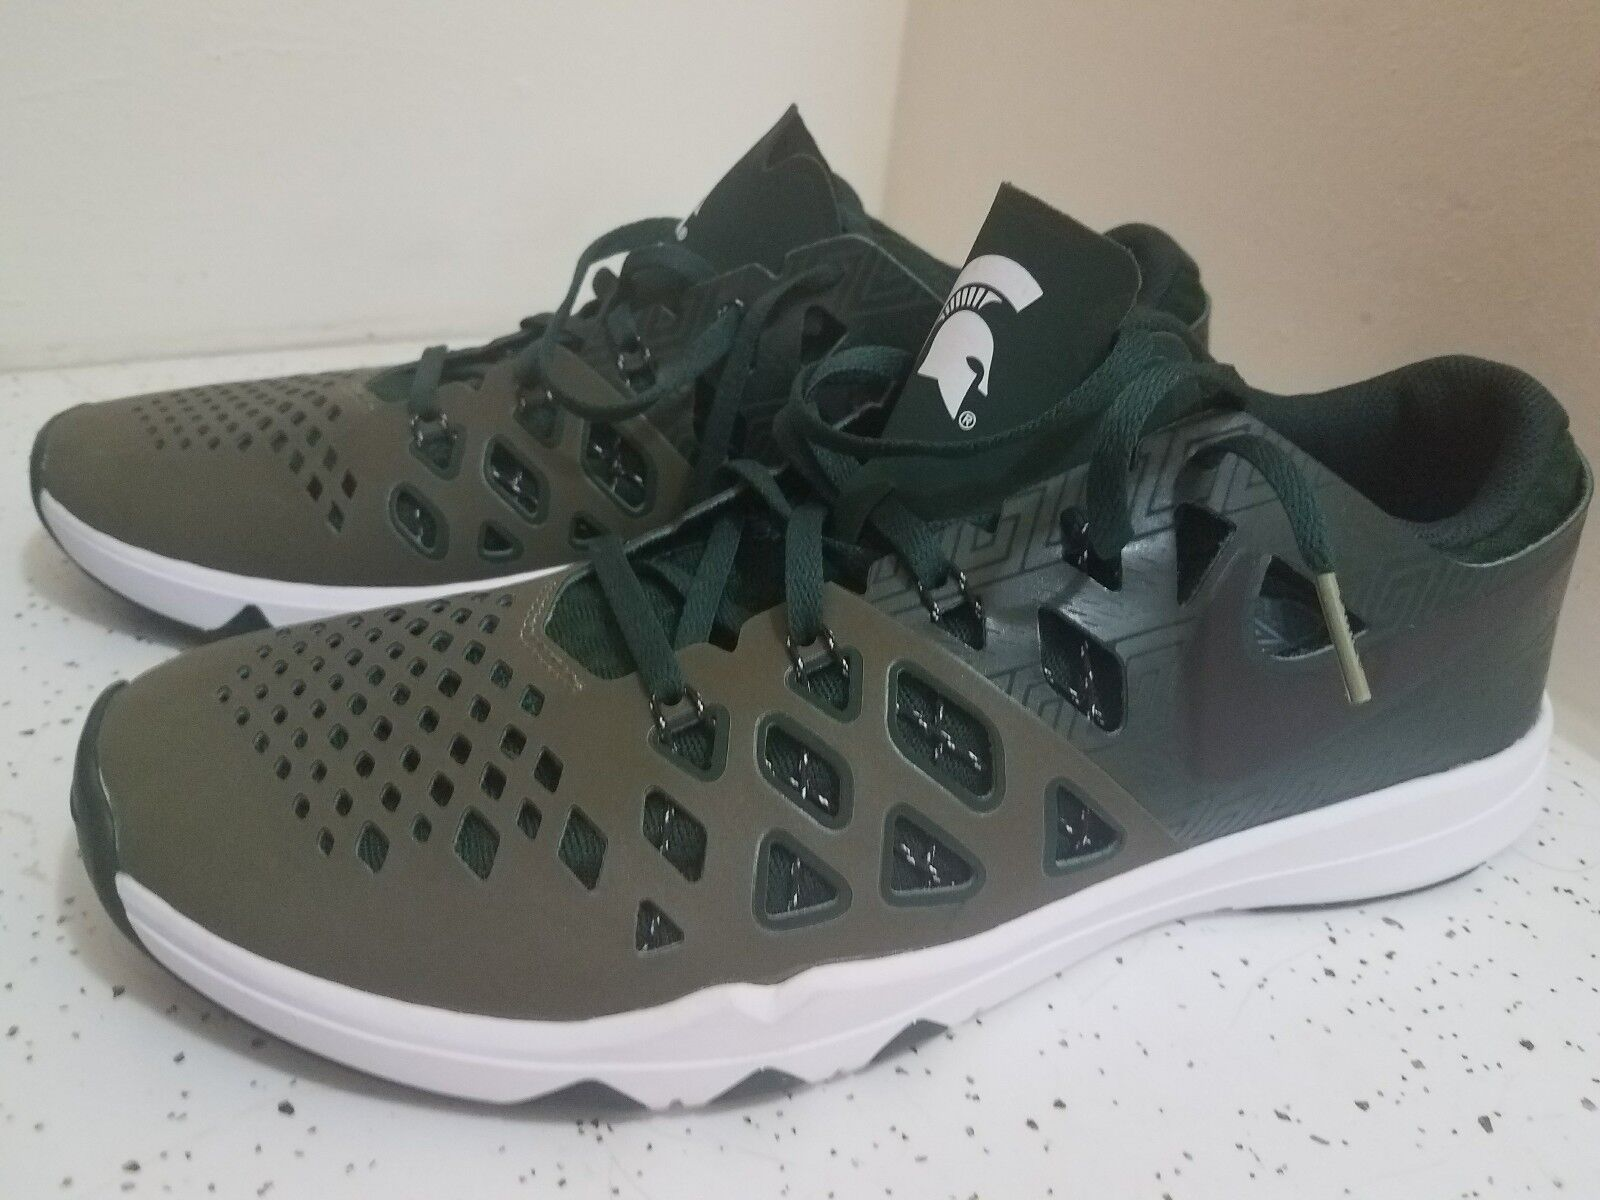 New Green Nike Running Shoes Train Speed 4 Amp MSU Spartans Size 10.5